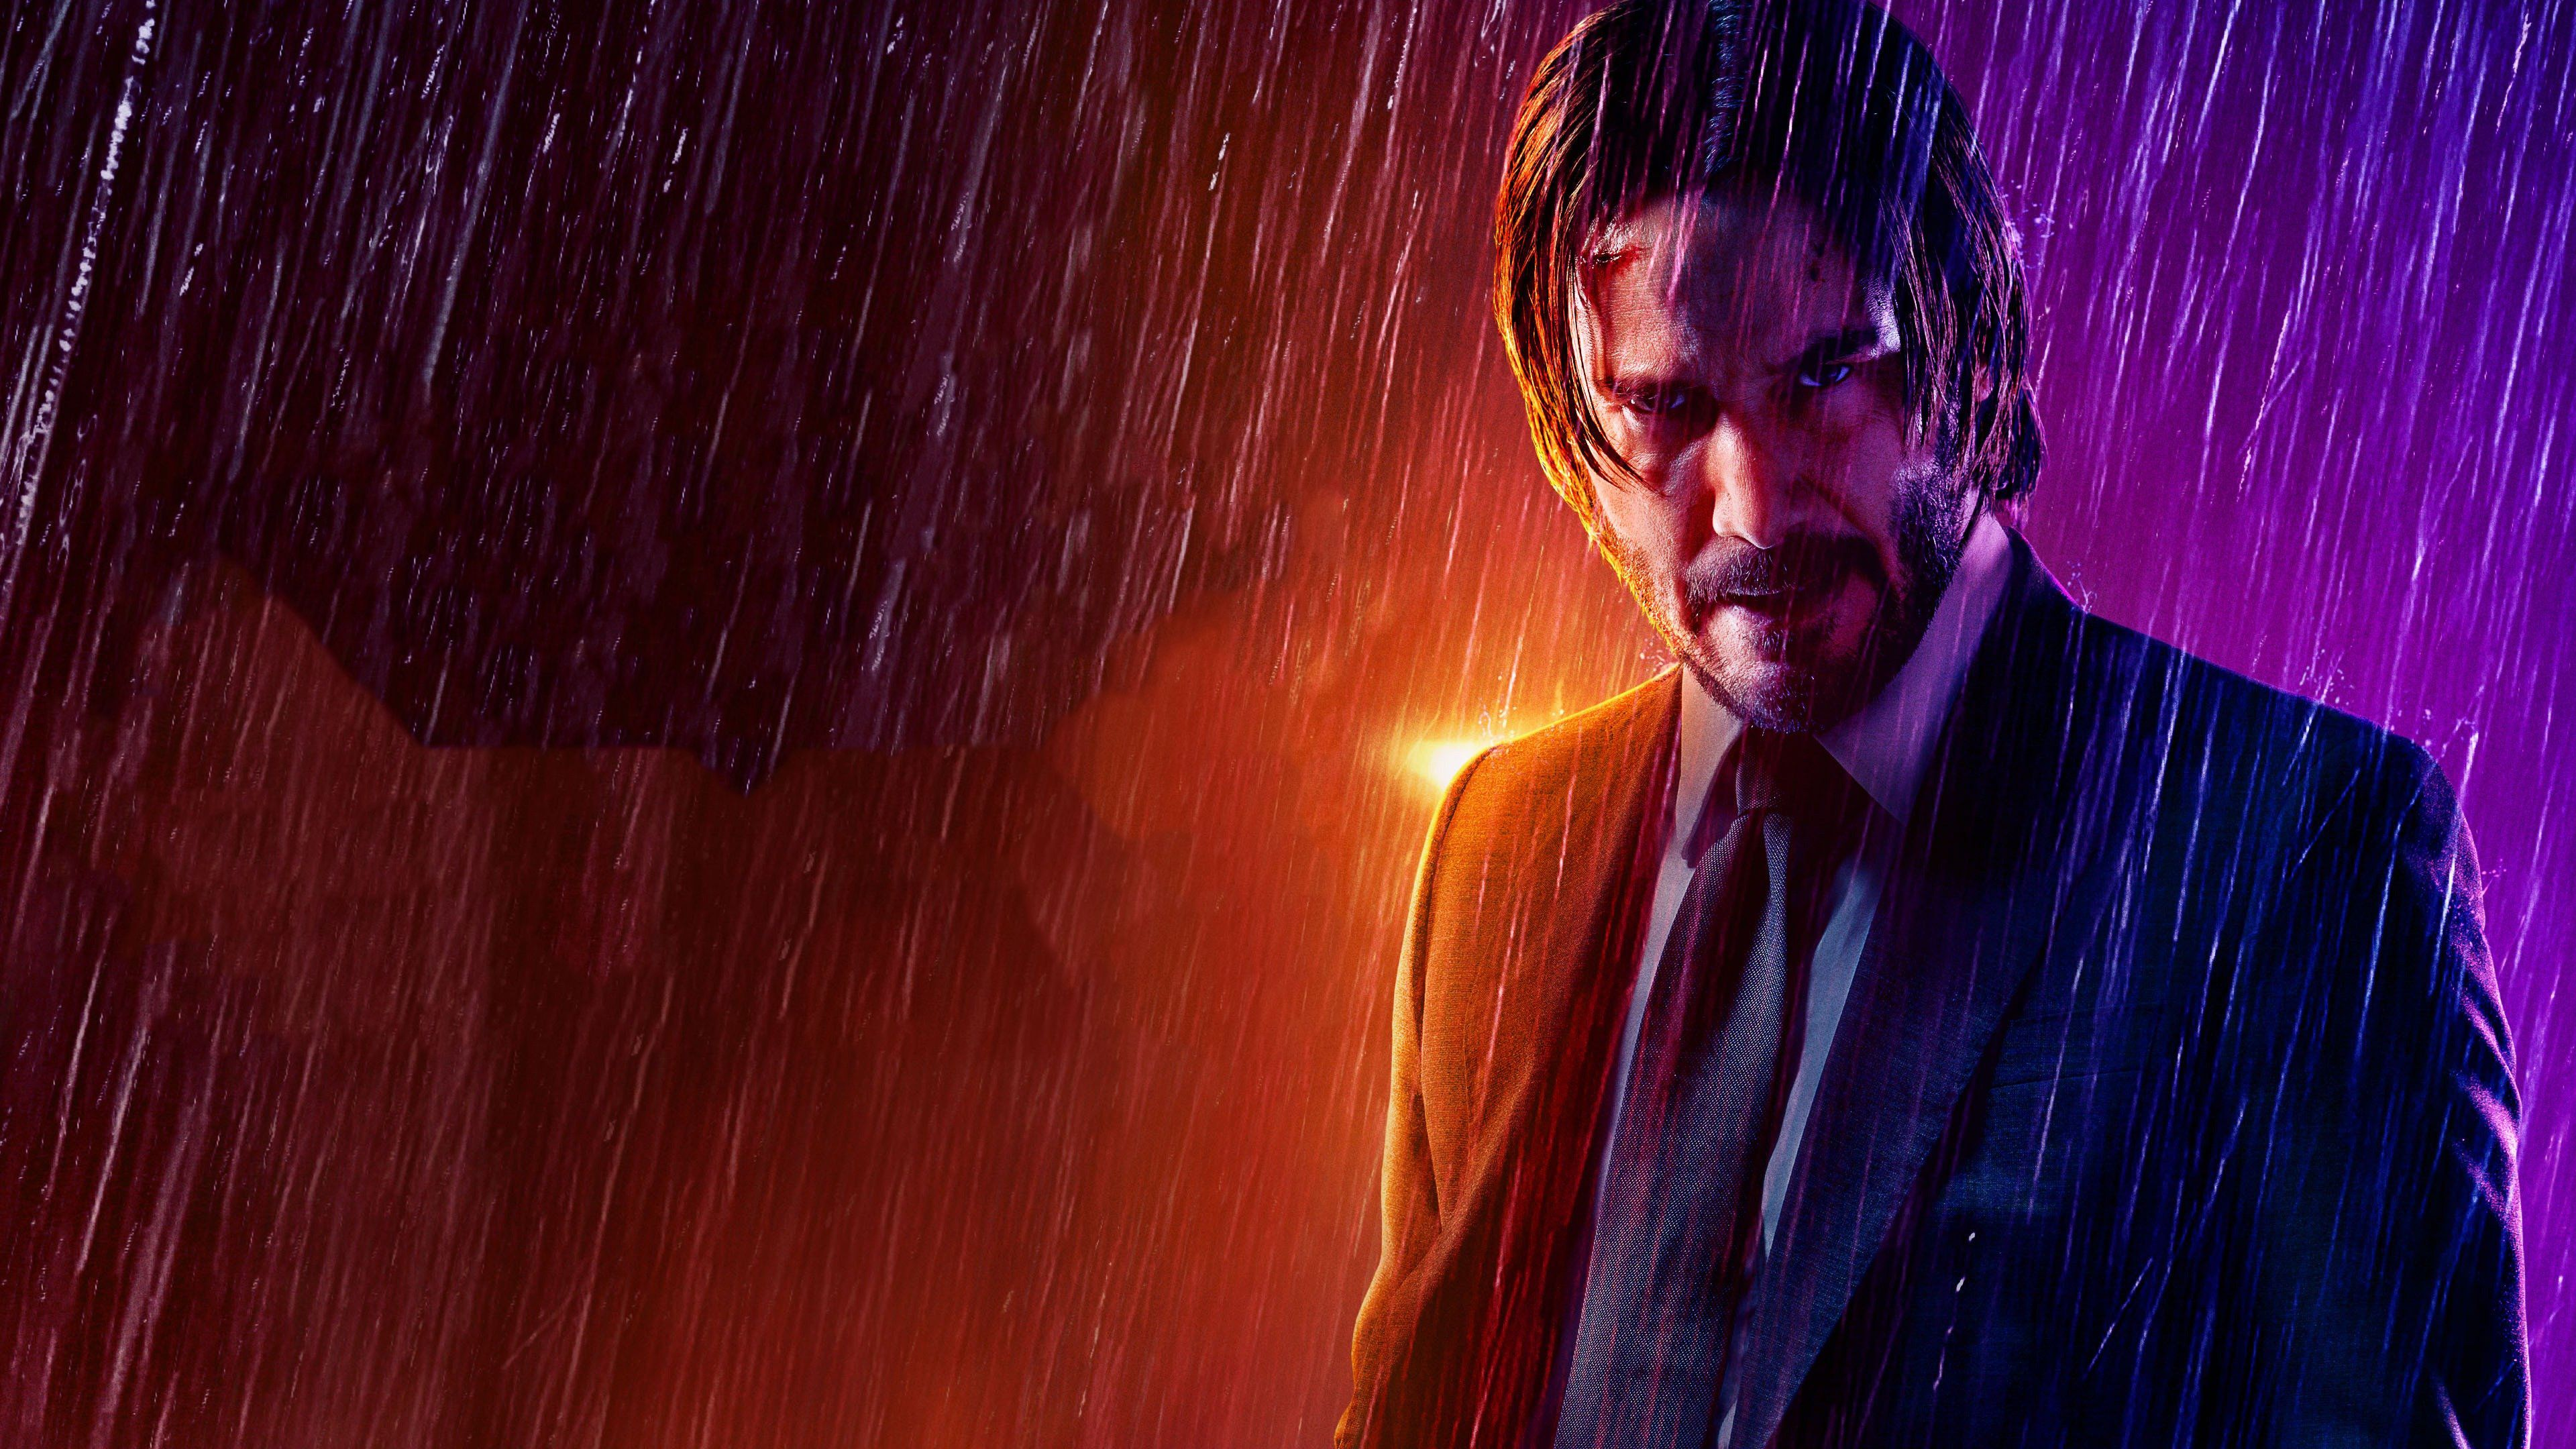 2019 John Wick Chapter 3 Parabellum Movies Wallpapers Keanu Reeves Wallpapers John Wick Wallpapers John Wic Keanu Reeves John Wick John Wick Hd Keanu Reeves